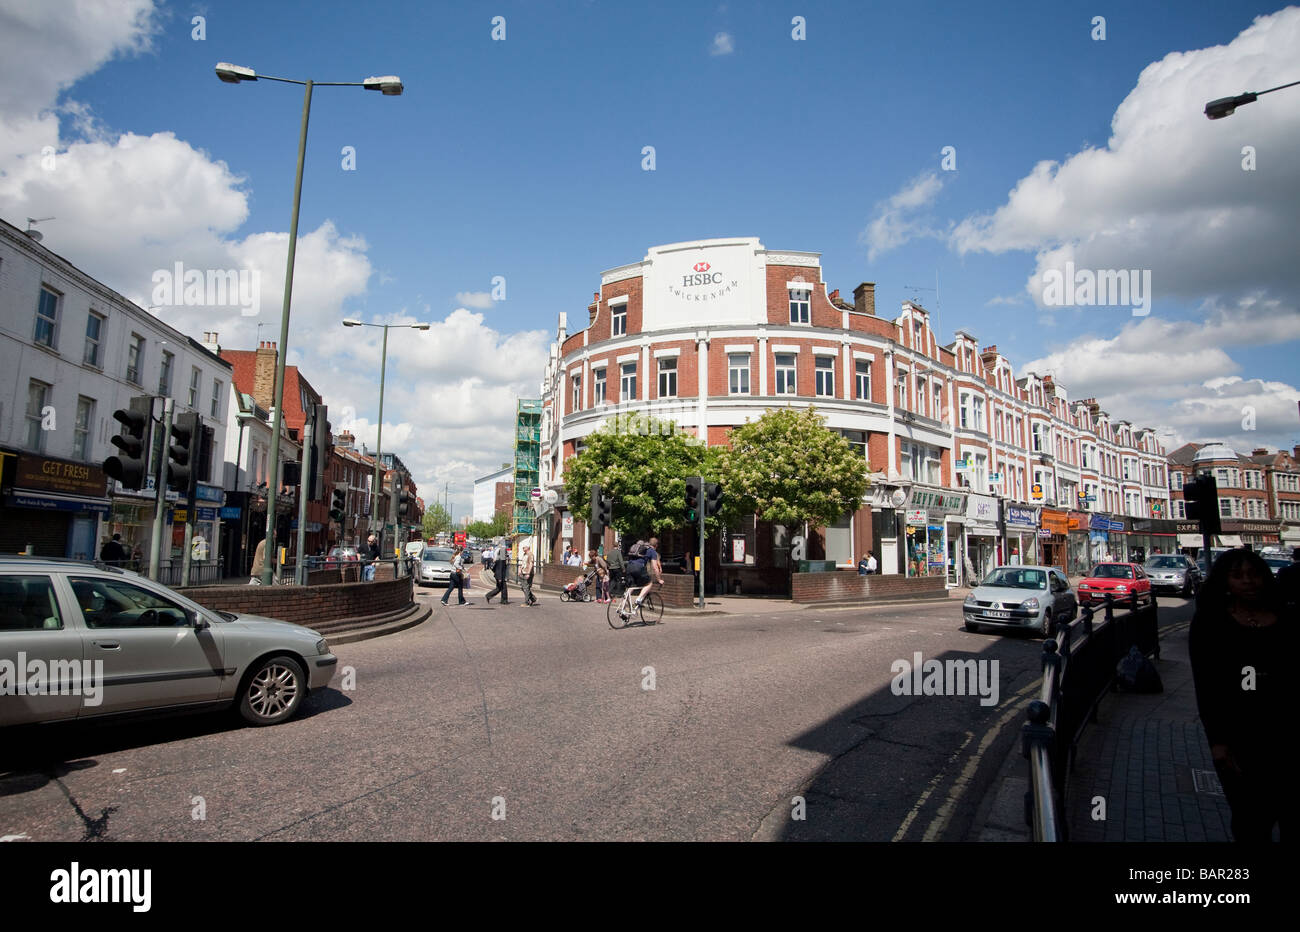 the centre of Twickenham London UK Stock Photo